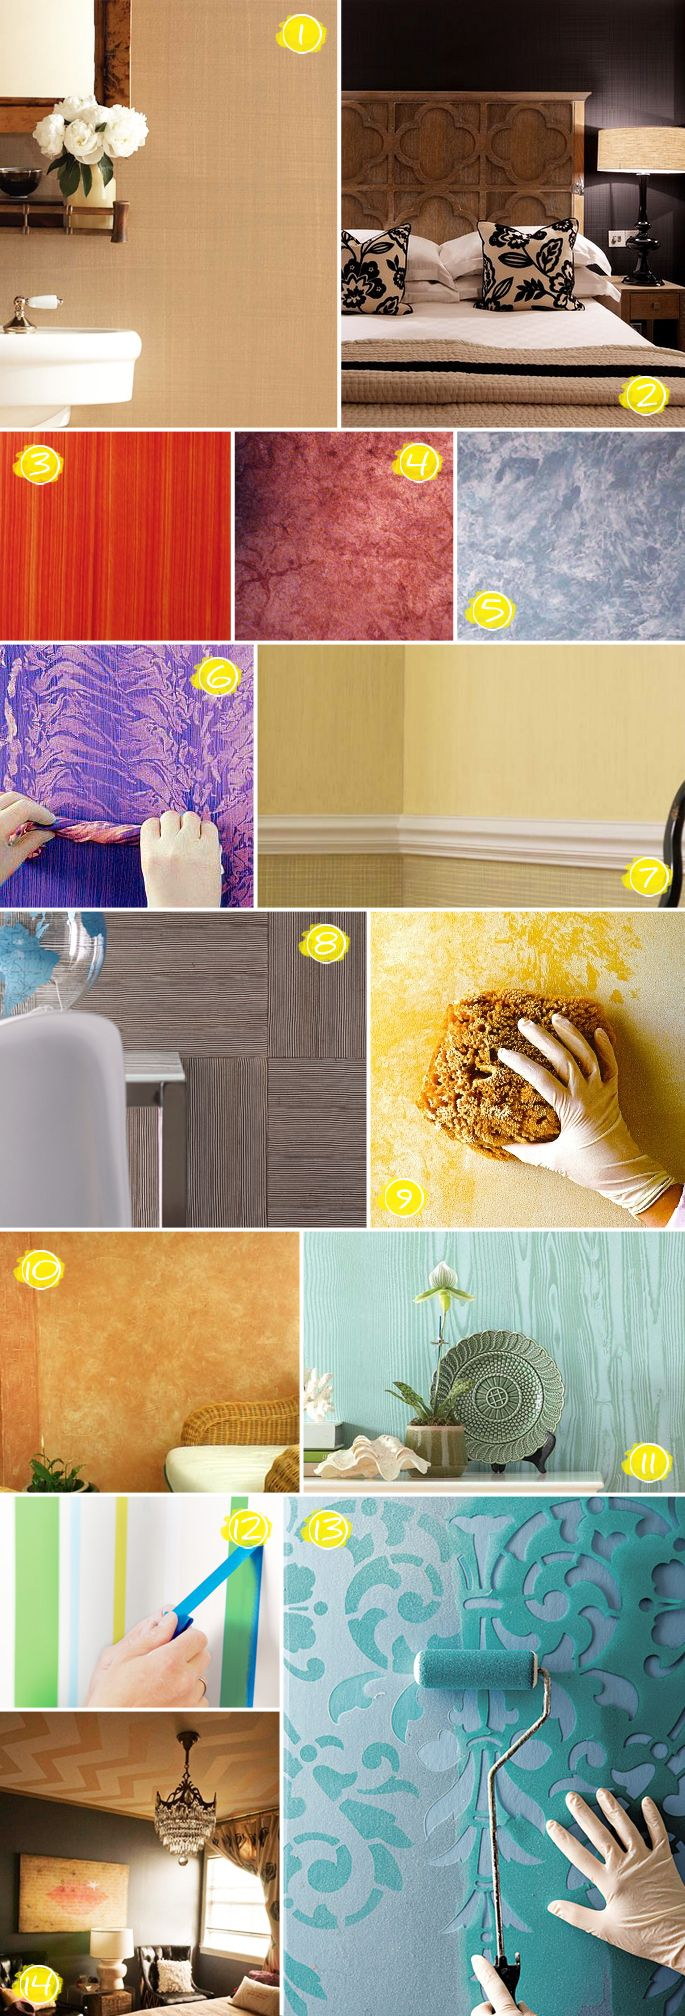 Unusual Wall Decorating Ideas For Renters Photos - The Wall Art ...